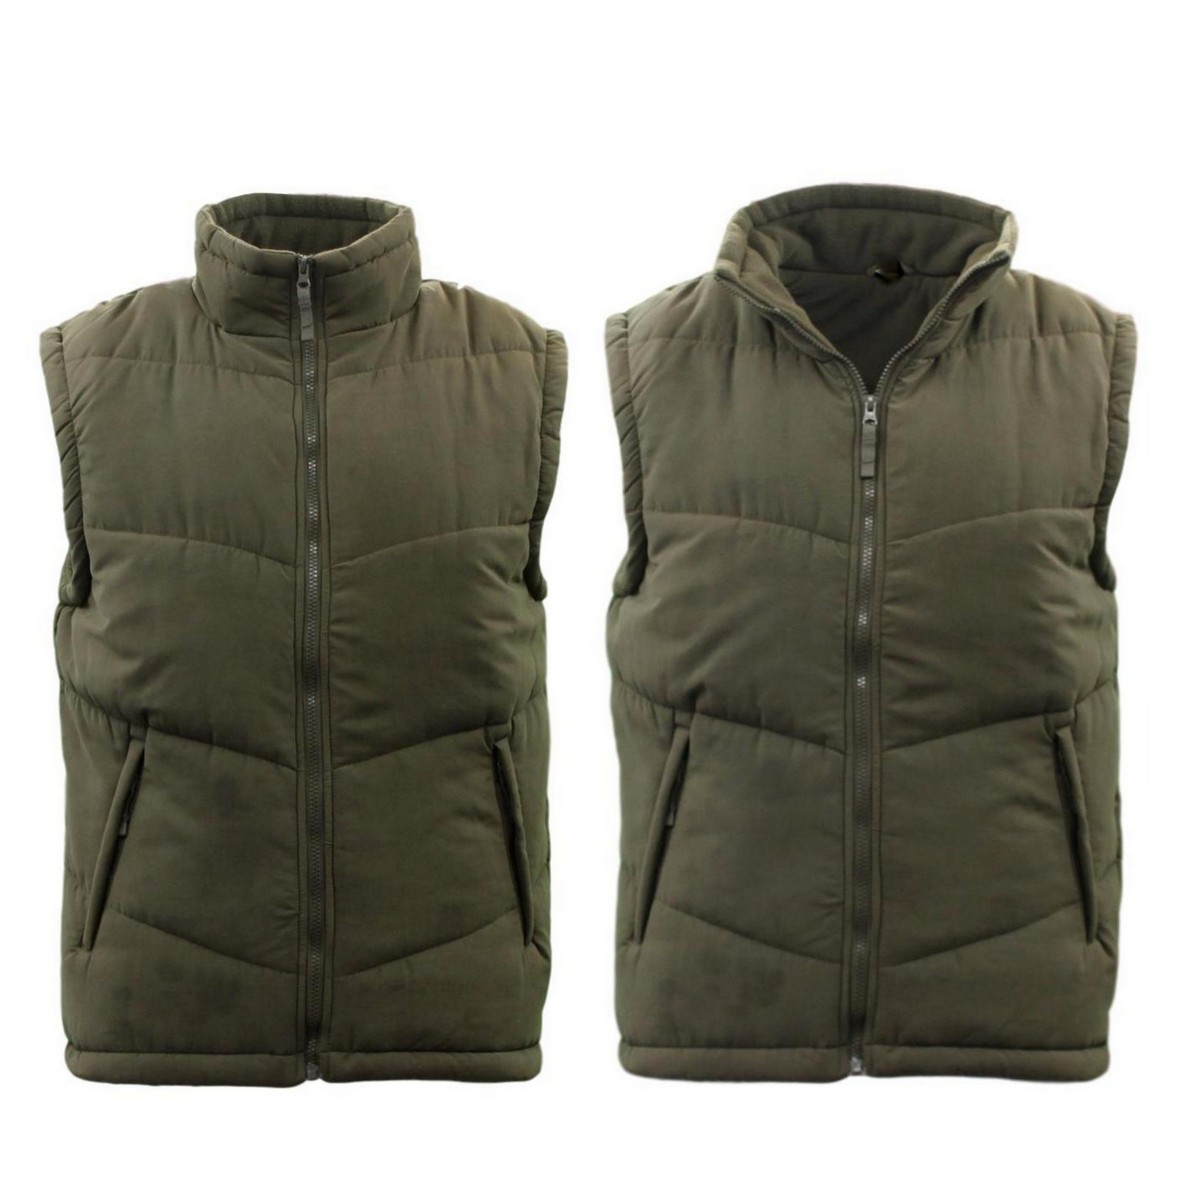 Men-039-s-Block-Quilted-Puffer-Vest-Sleeveless-Thick-Outerwear-Full-Zip-Jacket thumbnail 15